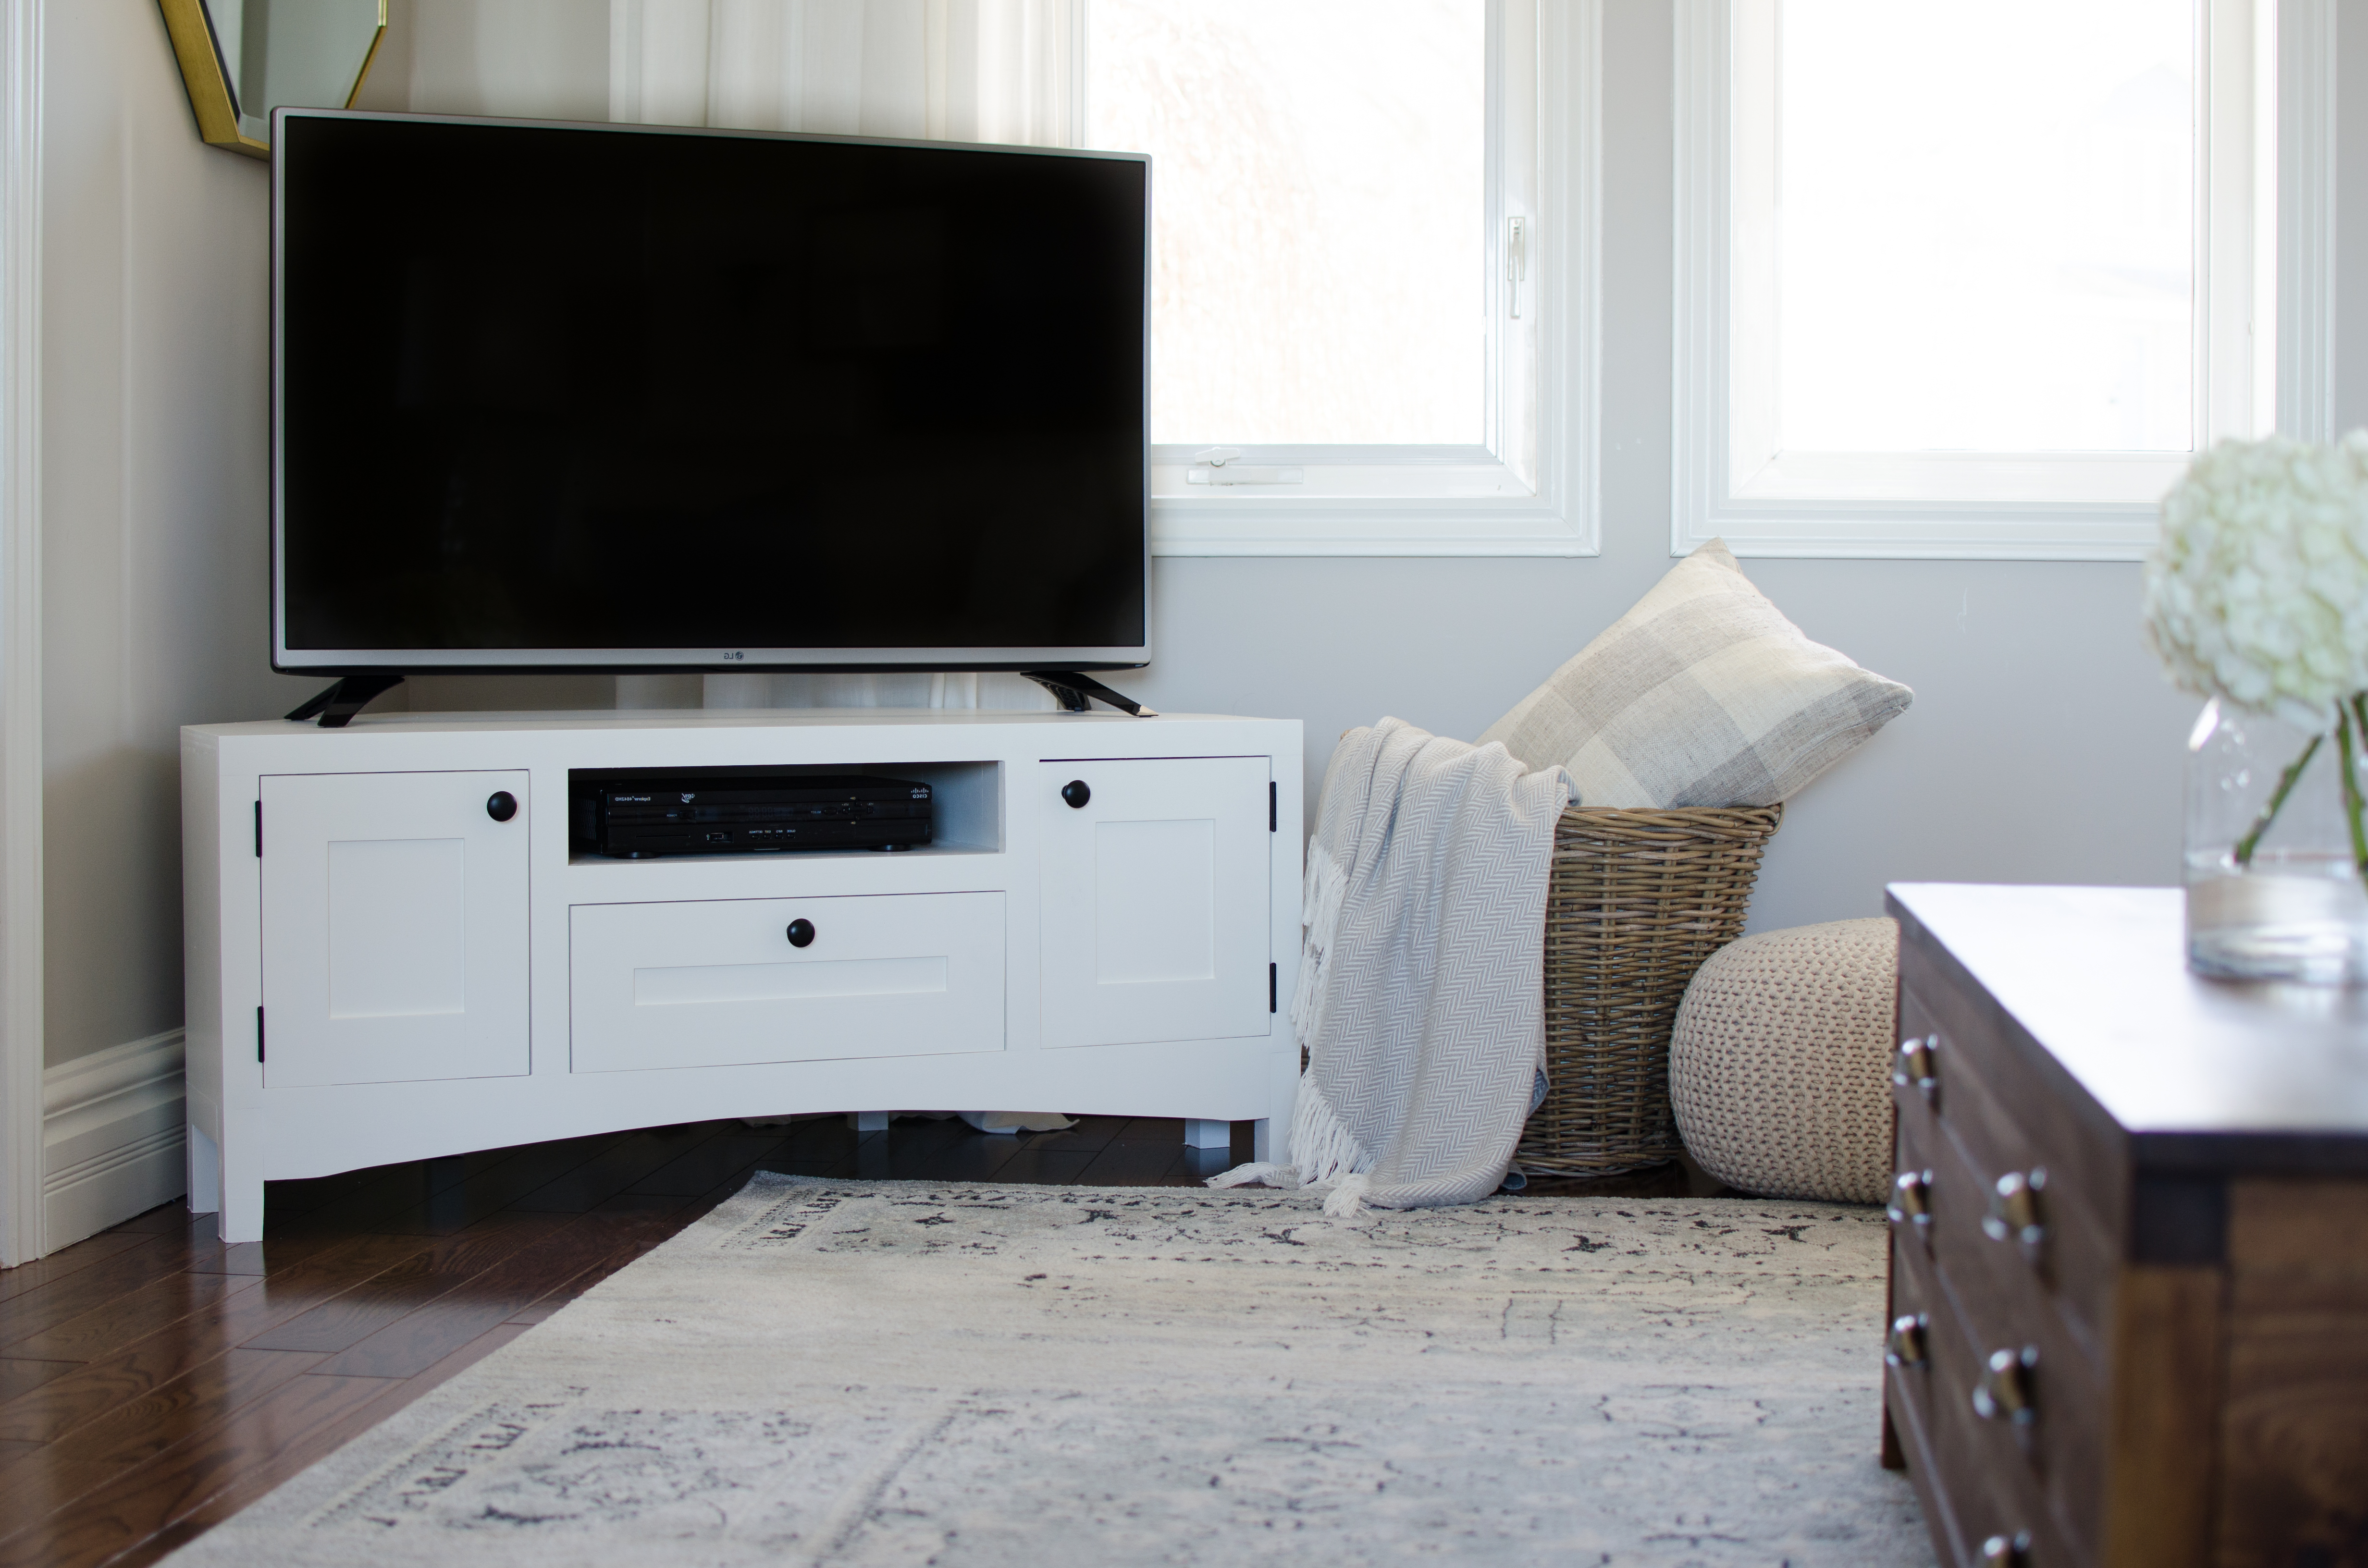 Free Plans – The Diy Hubs In Trendy Corner Tv Stands With Drawers (Gallery 16 of 20)